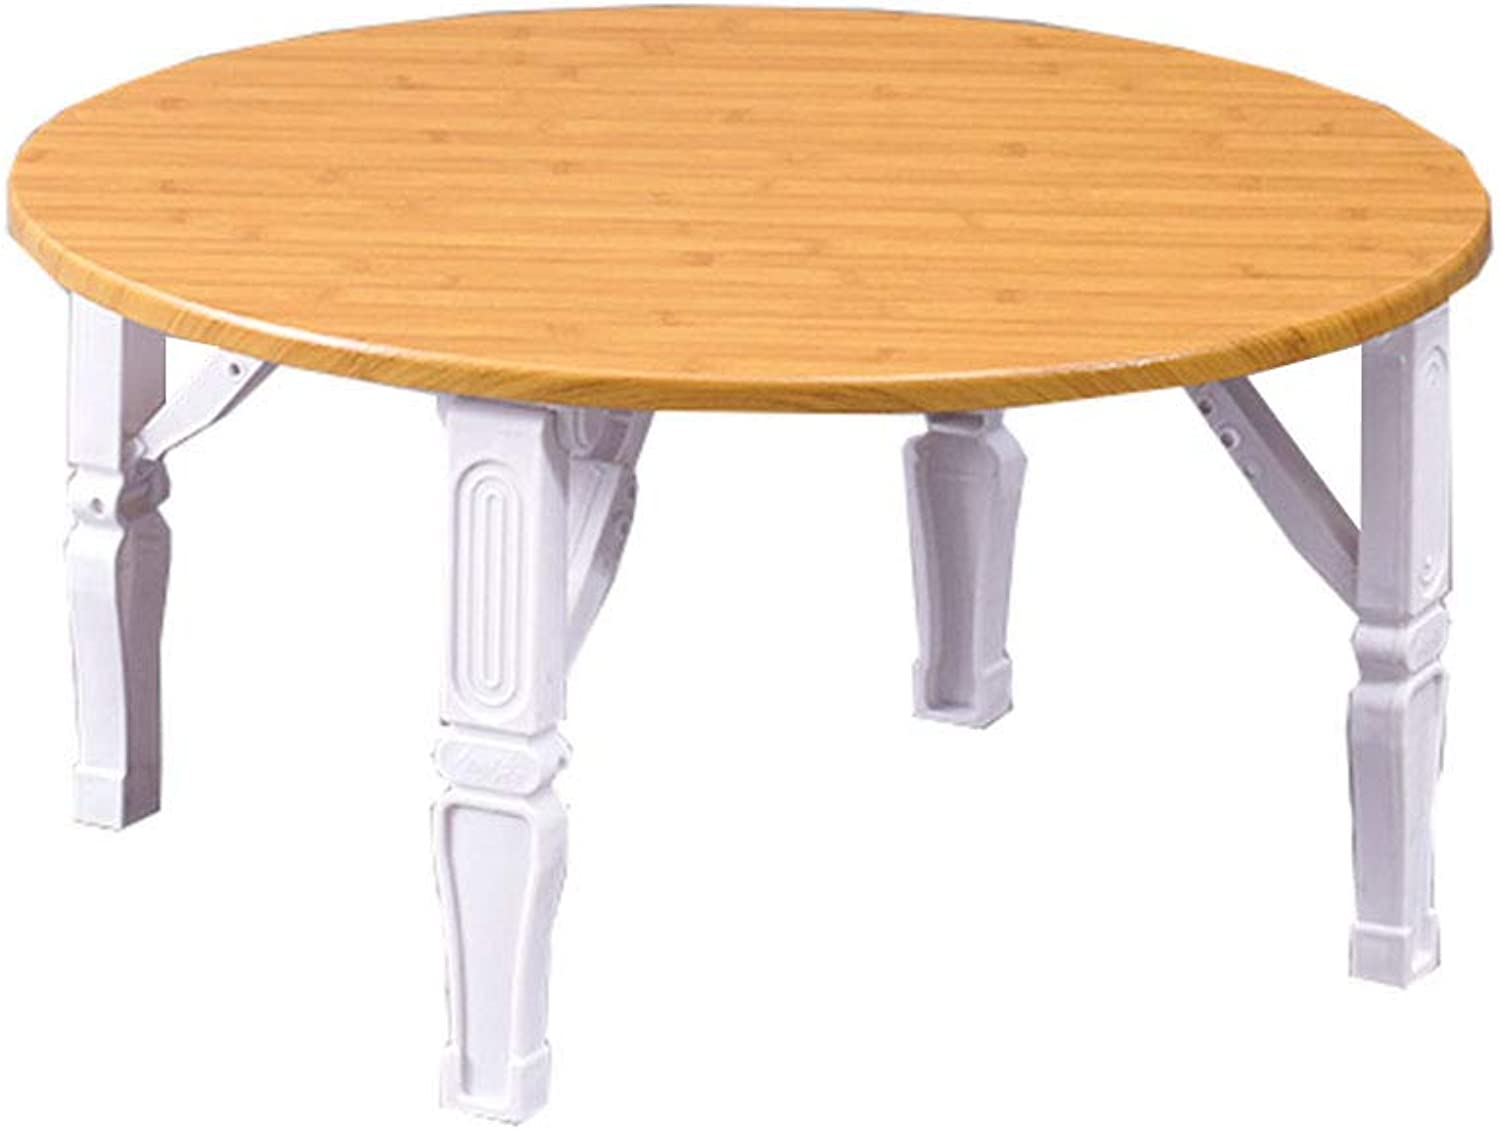 NJLC Folding Snack Table, Household Small Round Table Folding Table Simple Folding Small Table,C,60×60×30cm